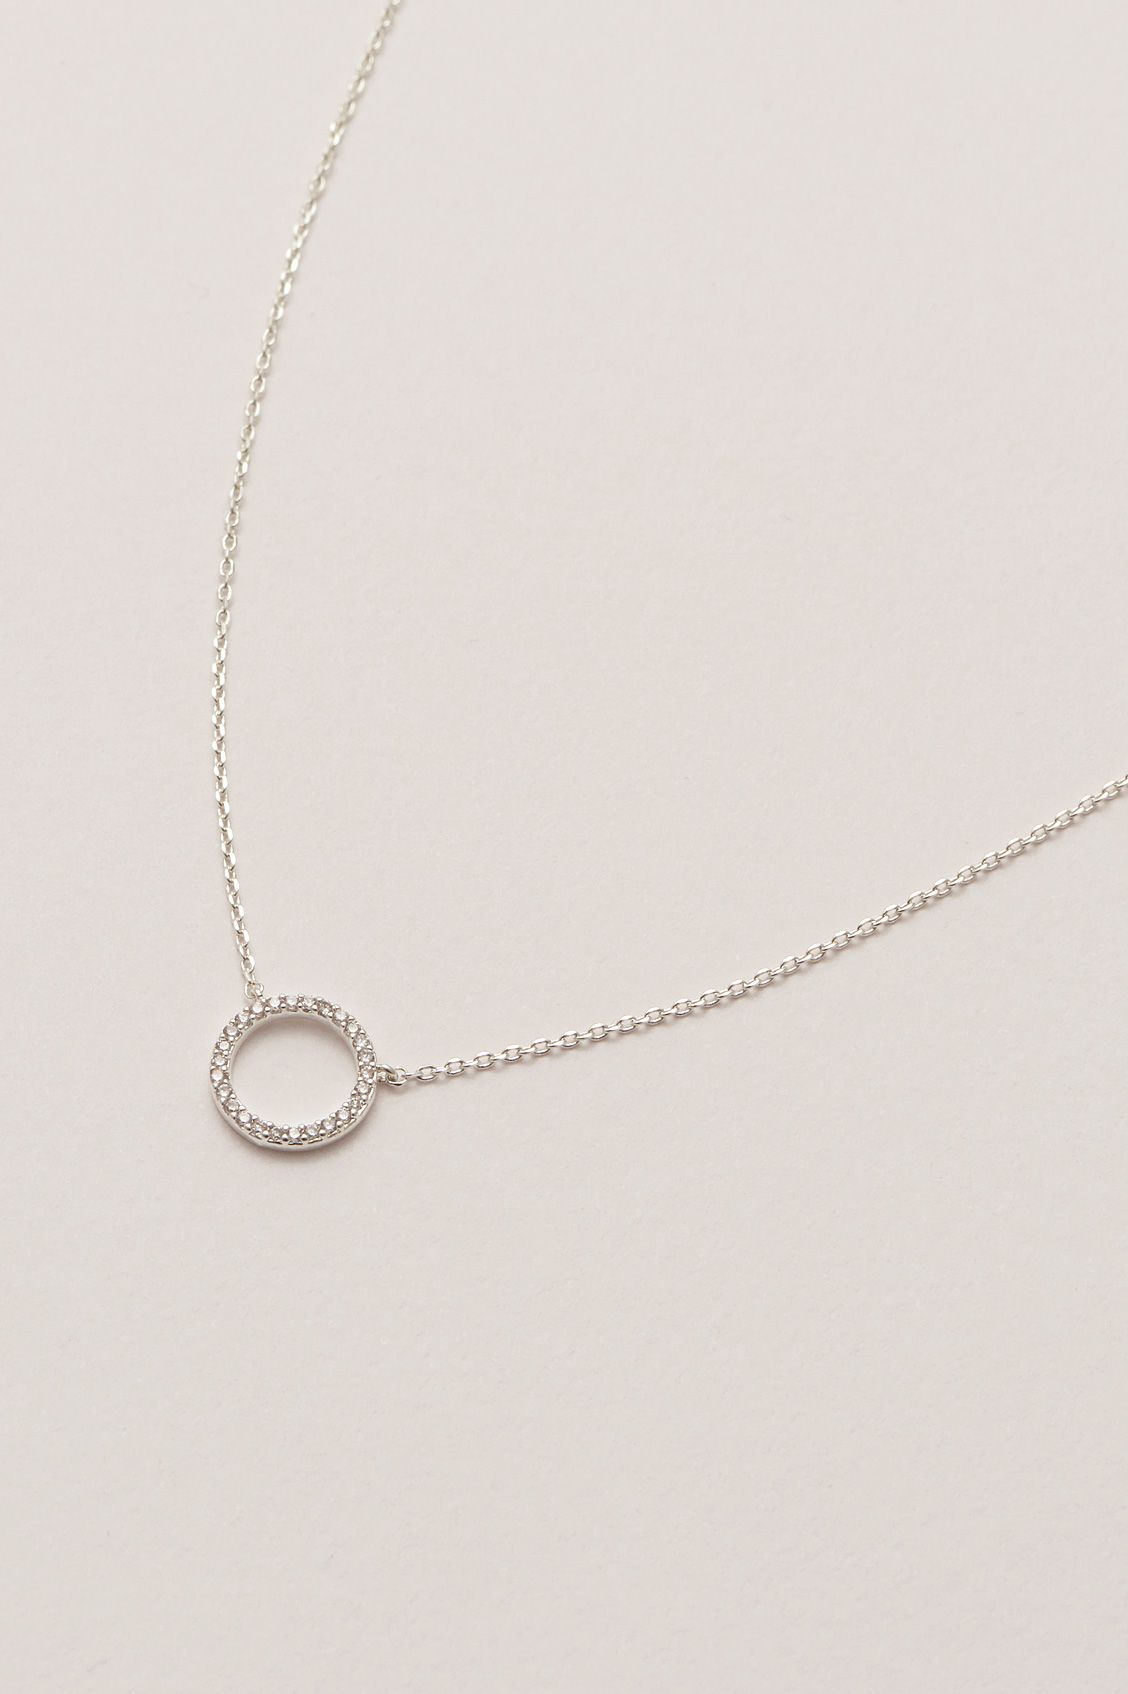 Circle Cz Necklace Intended For Current Circle Of Sparkle Necklaces (View 1 of 25)